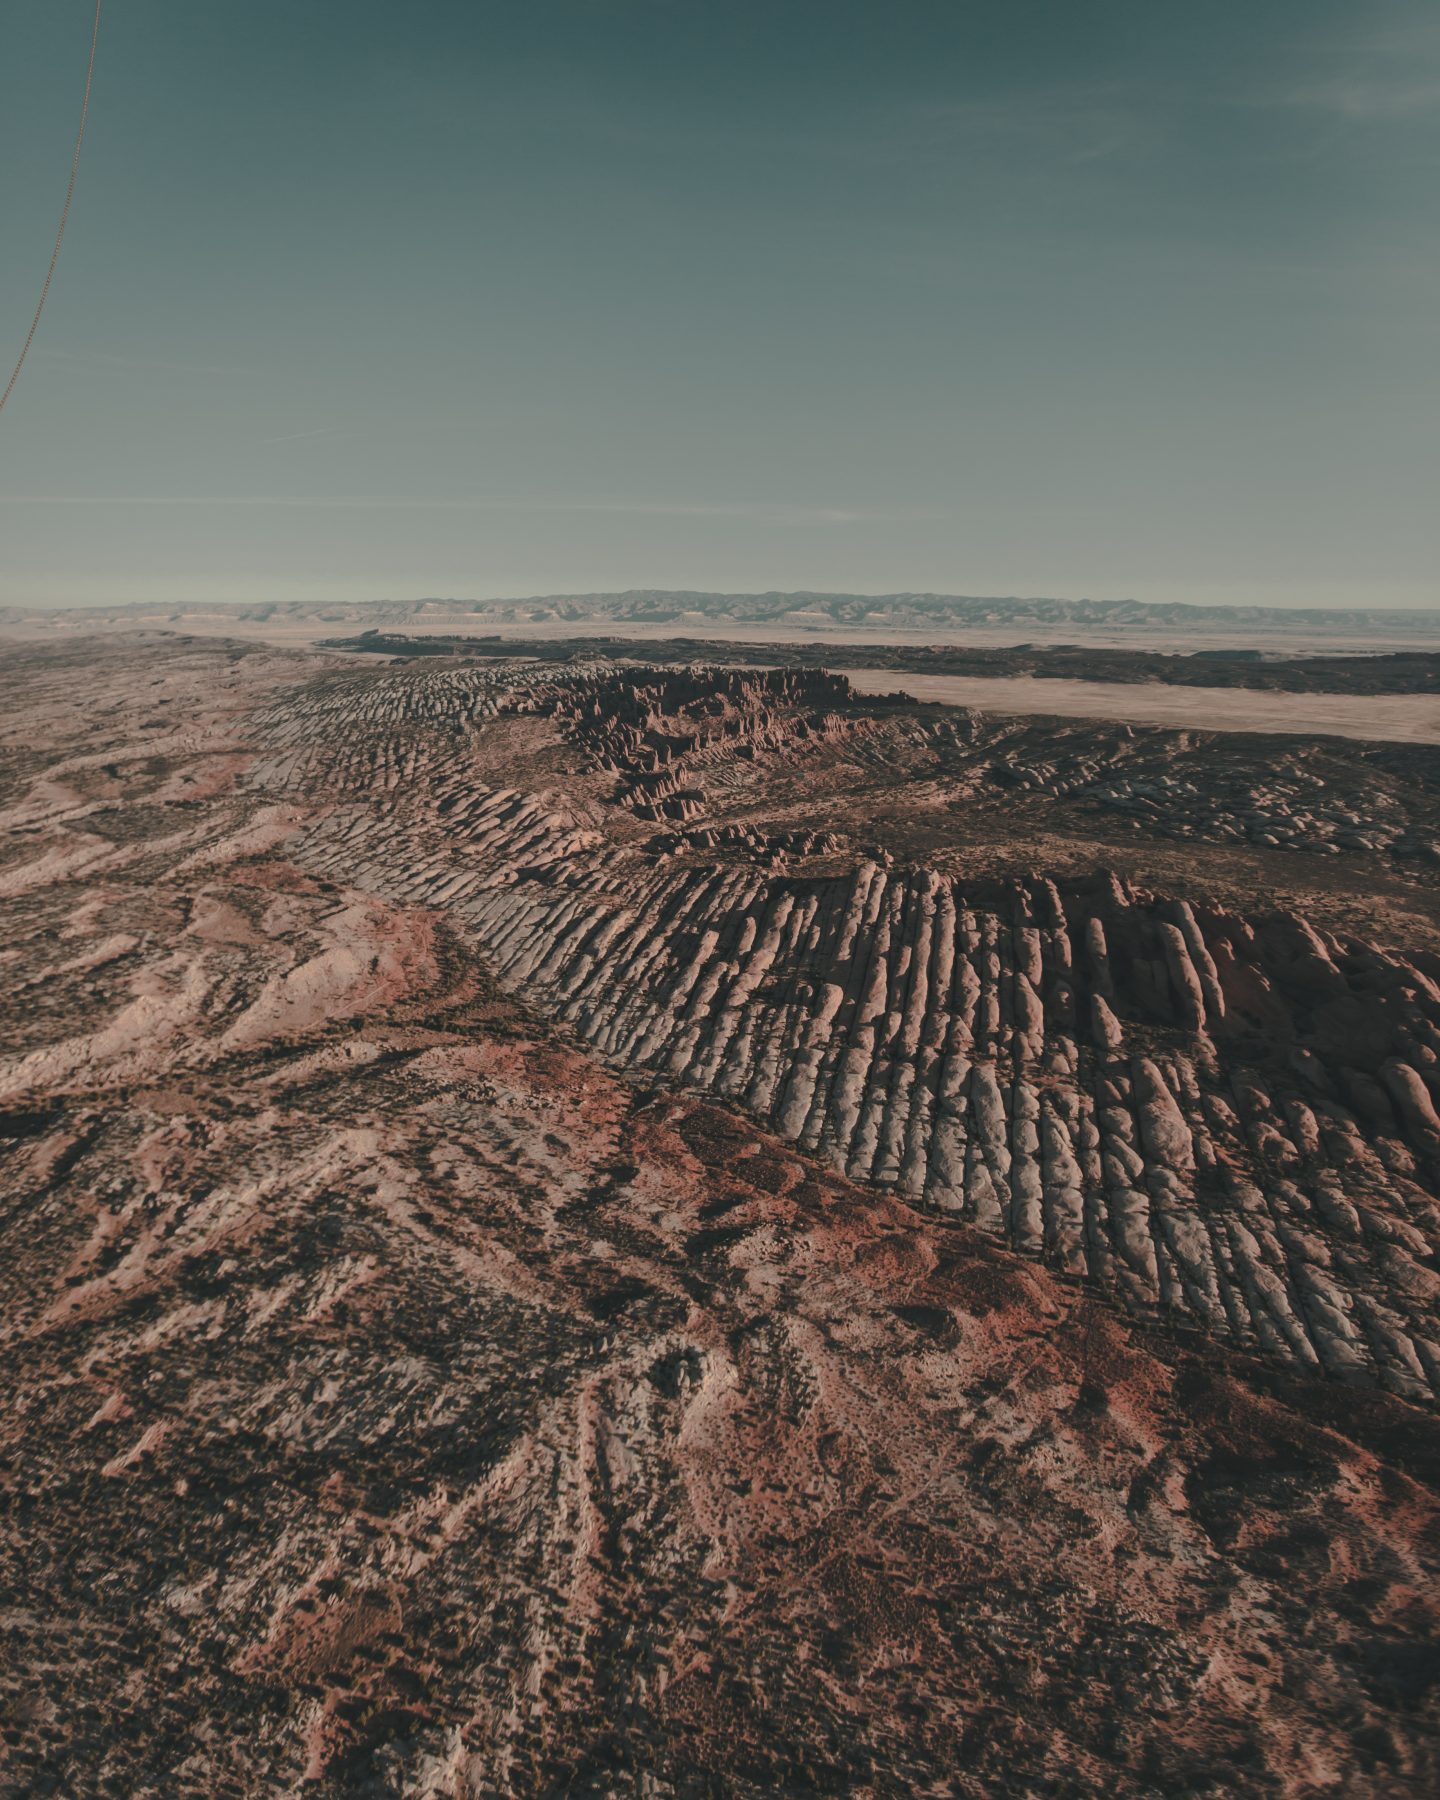 Moab Utah and Arches National Park from a hot air balloon ride at sunrise